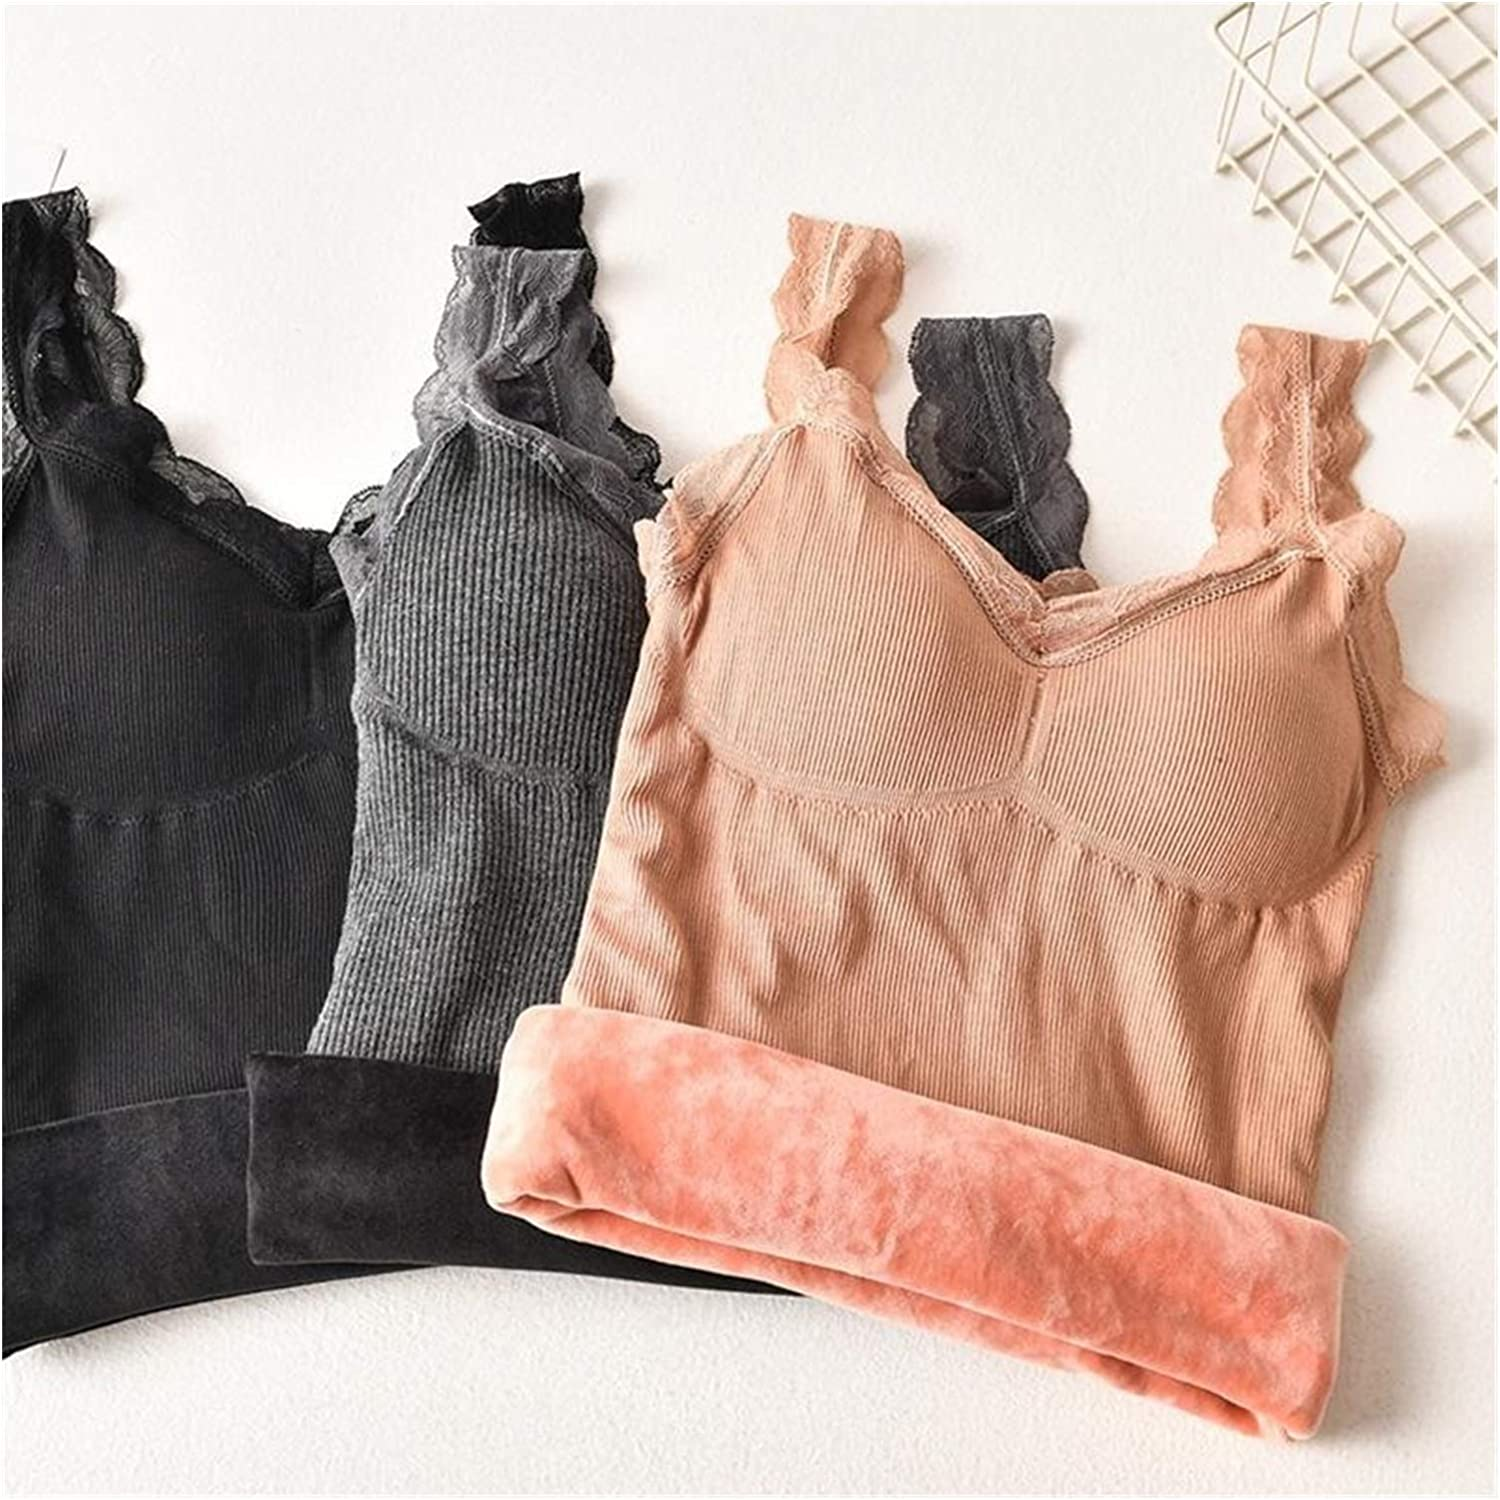 Glqwe Winter Tops Women Thermal Underwear Comfortable Keep Warm Tank Top Sexy Slim Female Vest Lace V-Neck (Color : Khaki, Size : One Size)